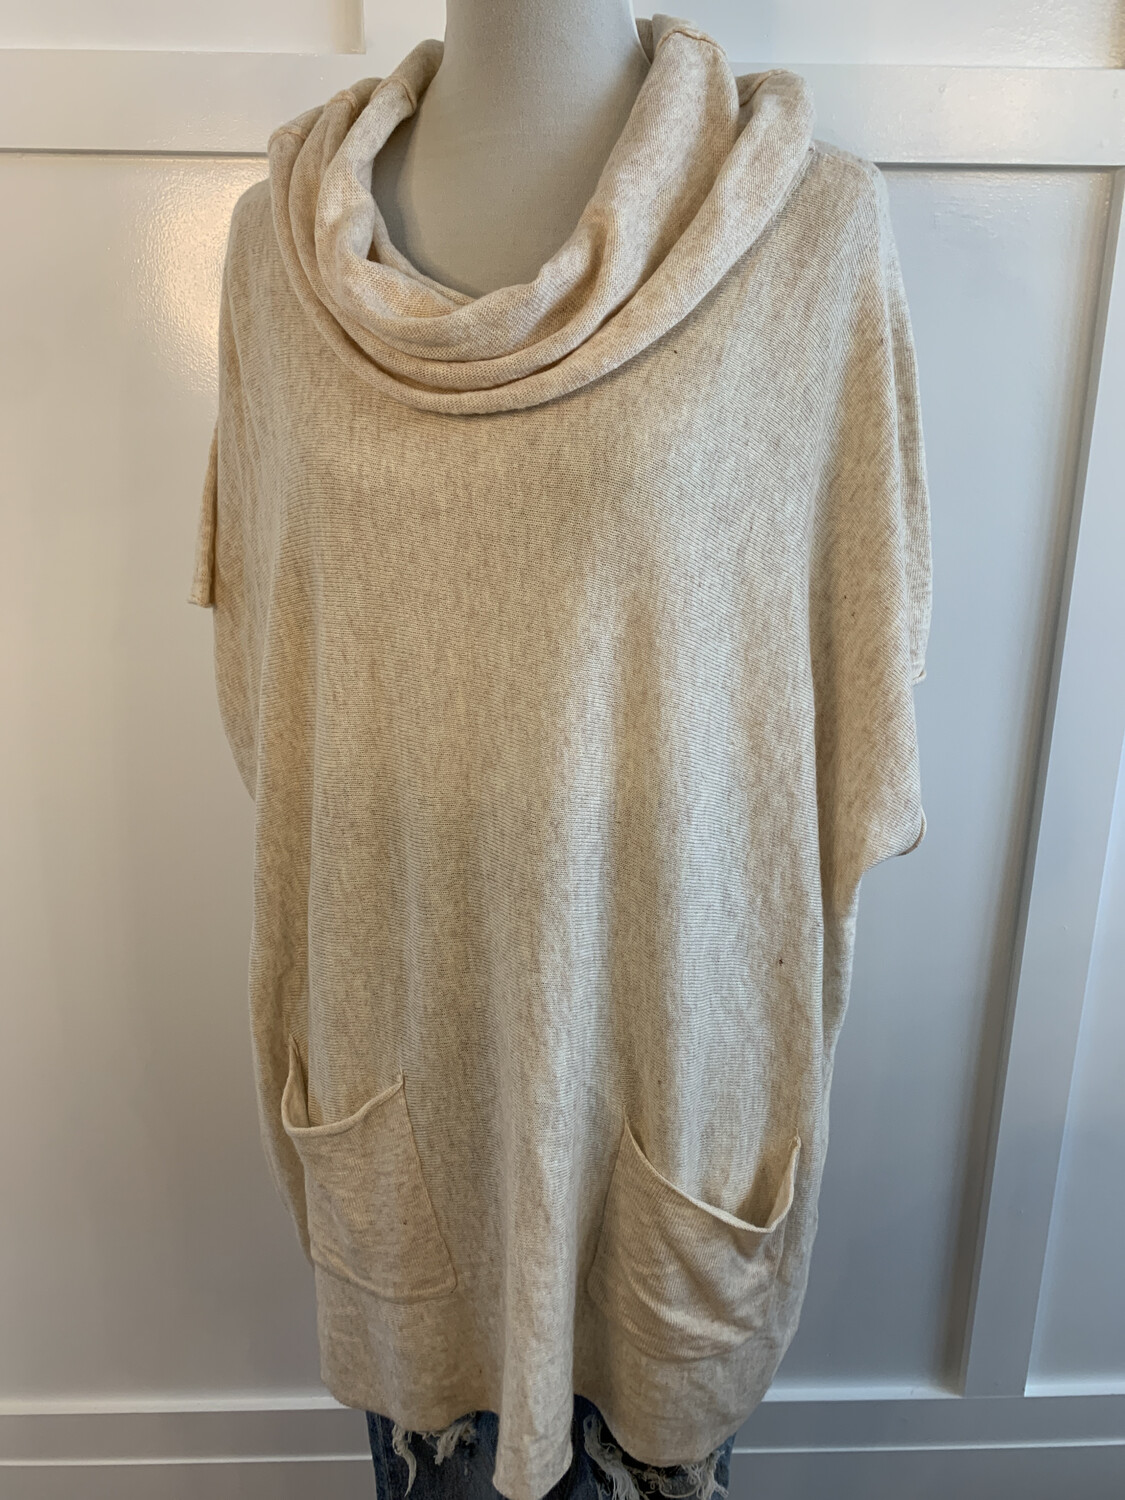 A'reve Cream Turtleneck Pocket Oversized Top - S/M